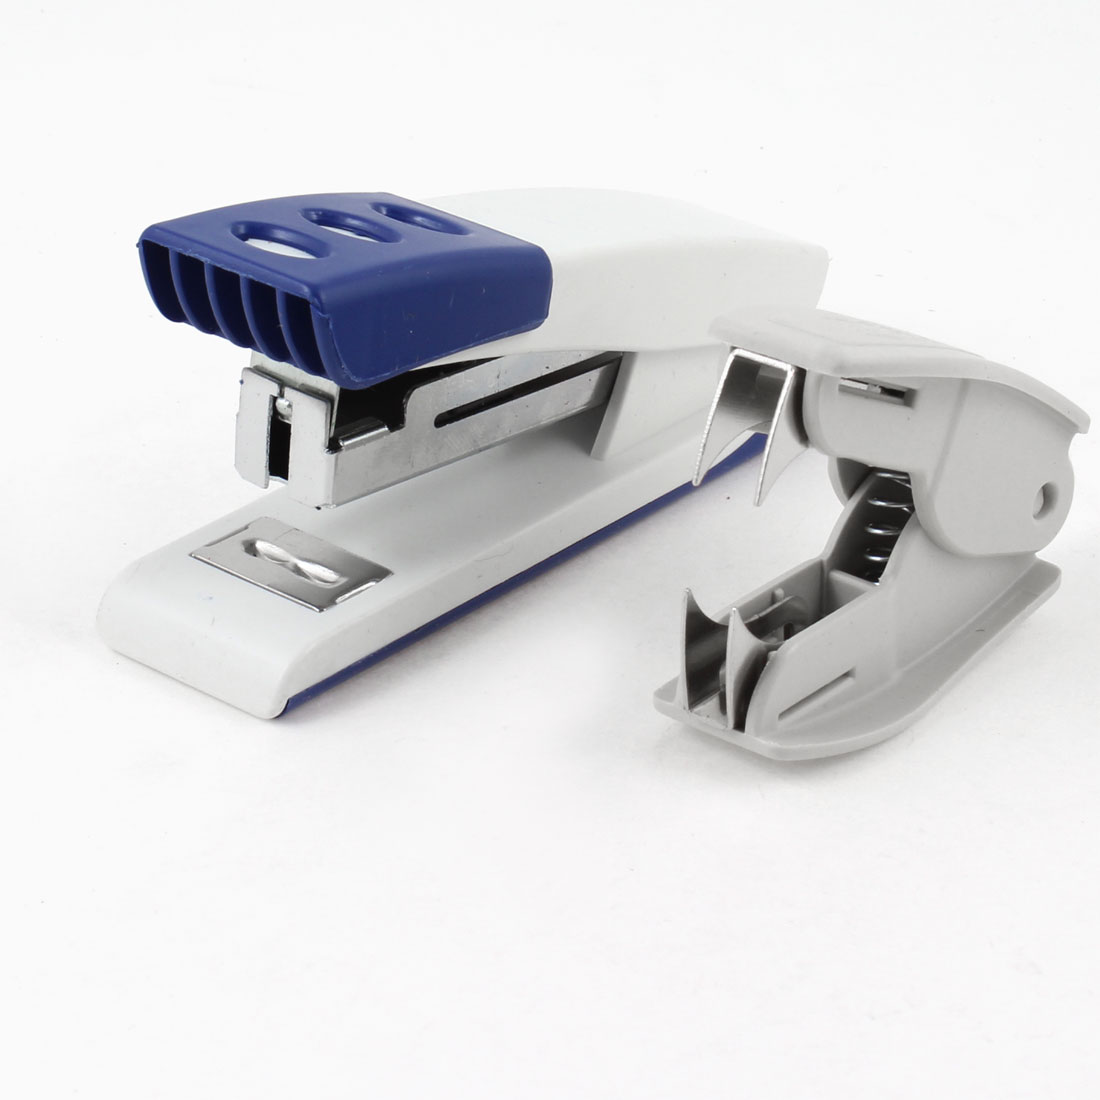 Blue Replacement No 3 Staples Dispenser Staplers w Staple Remover for Teachers